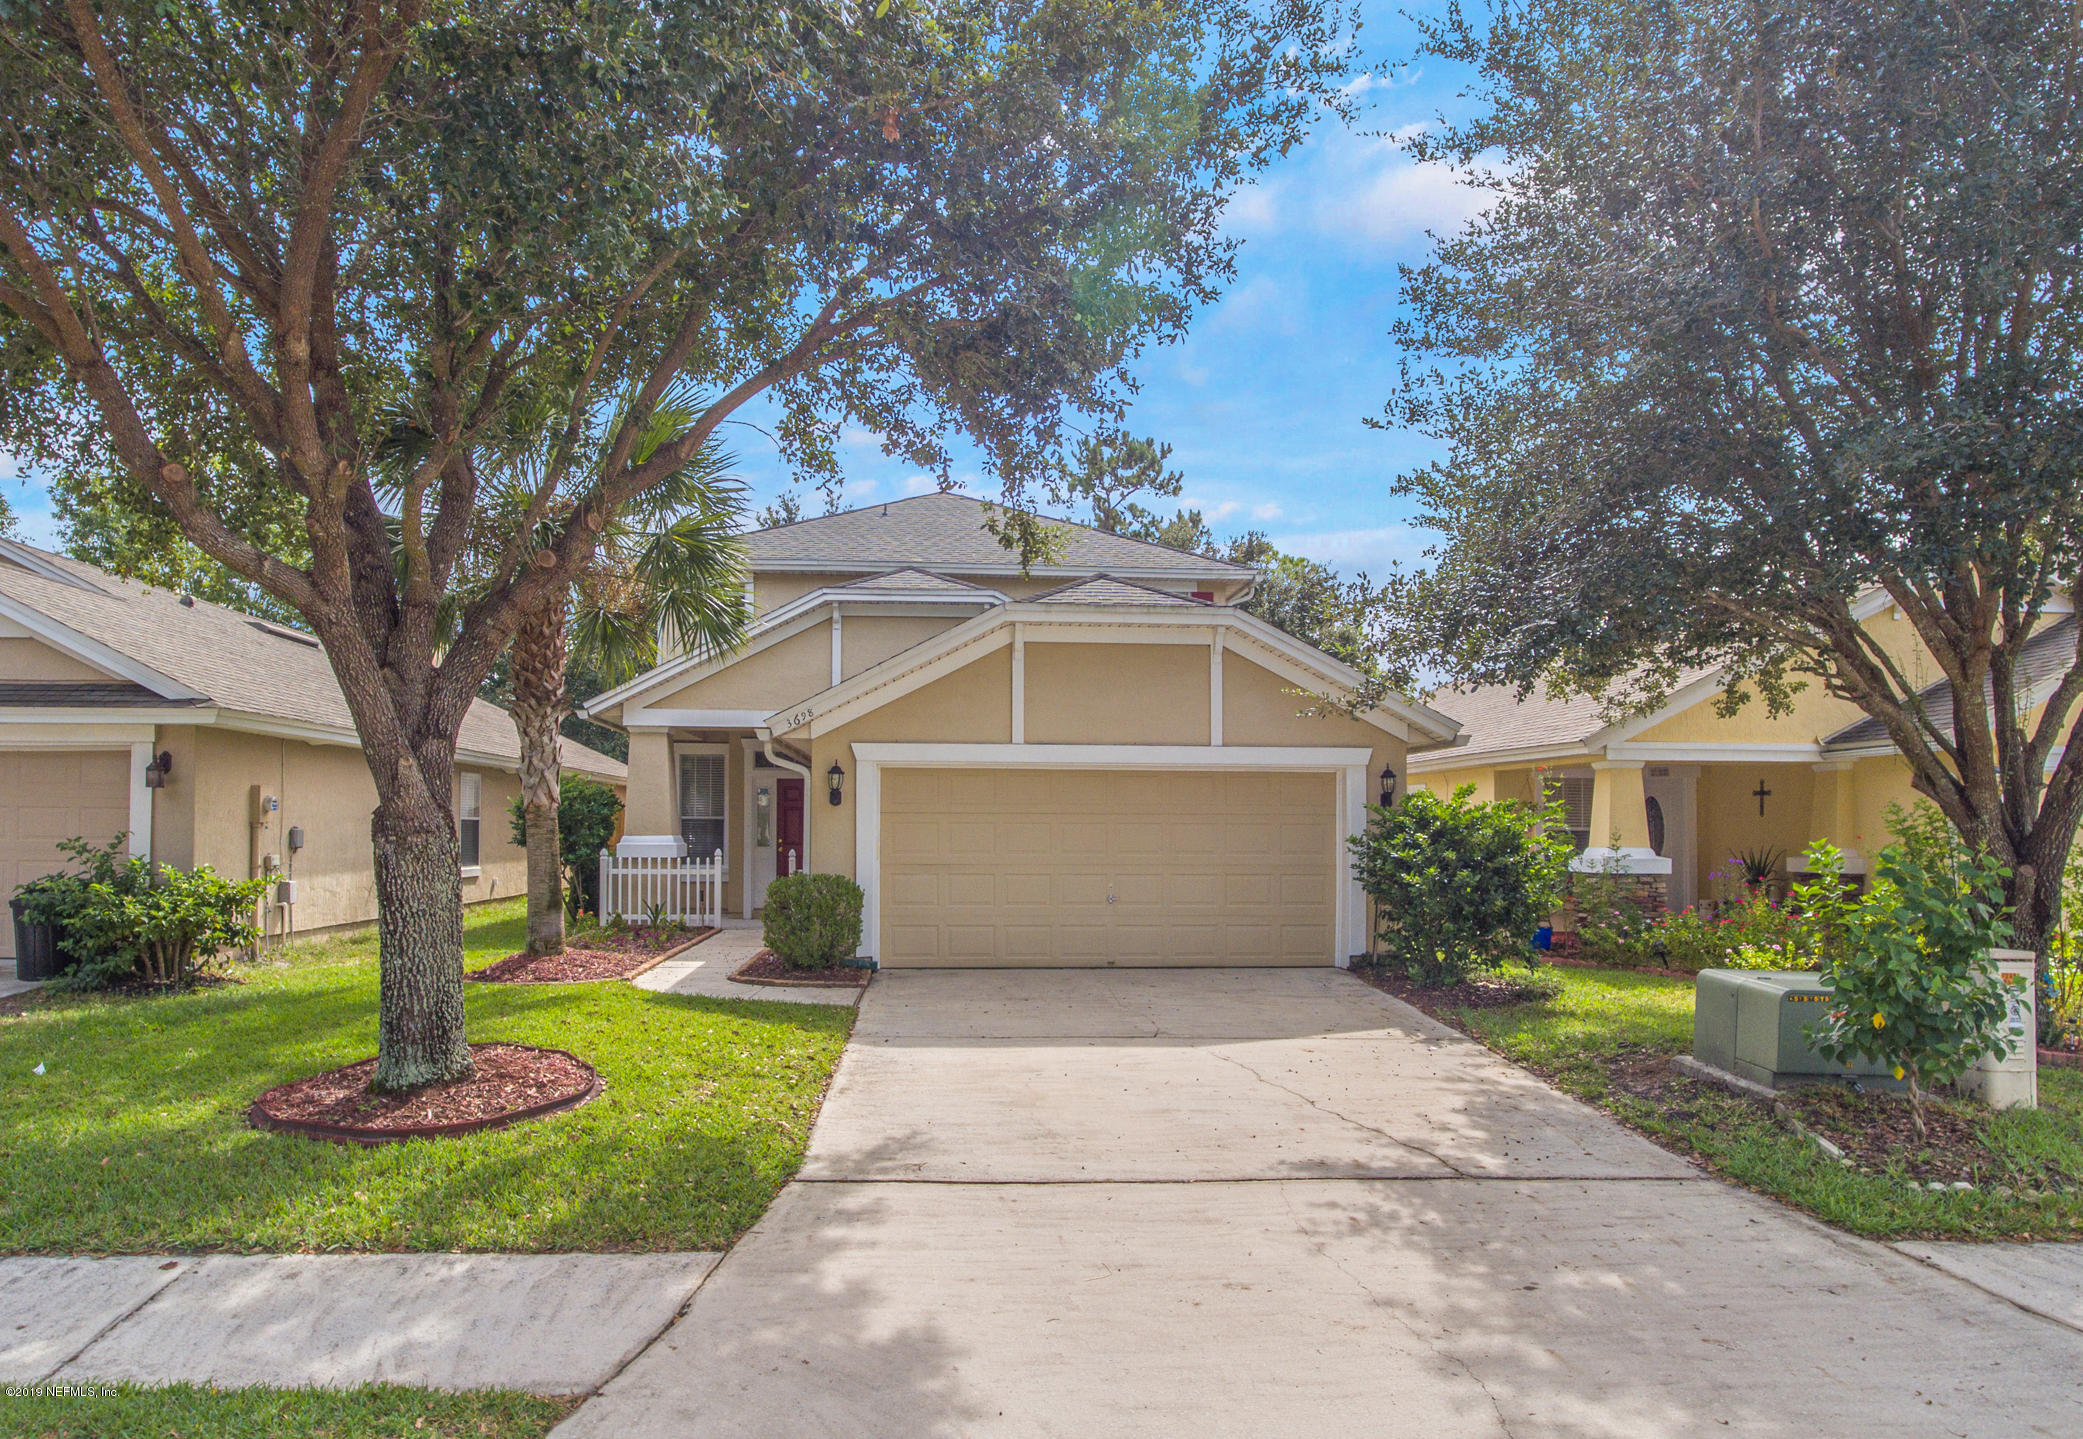 3698 SILVER BLUFF, ORANGE PARK, FLORIDA 32065, 3 Bedrooms Bedrooms, ,2 BathroomsBathrooms,Residential - single family,For sale,SILVER BLUFF,1021302